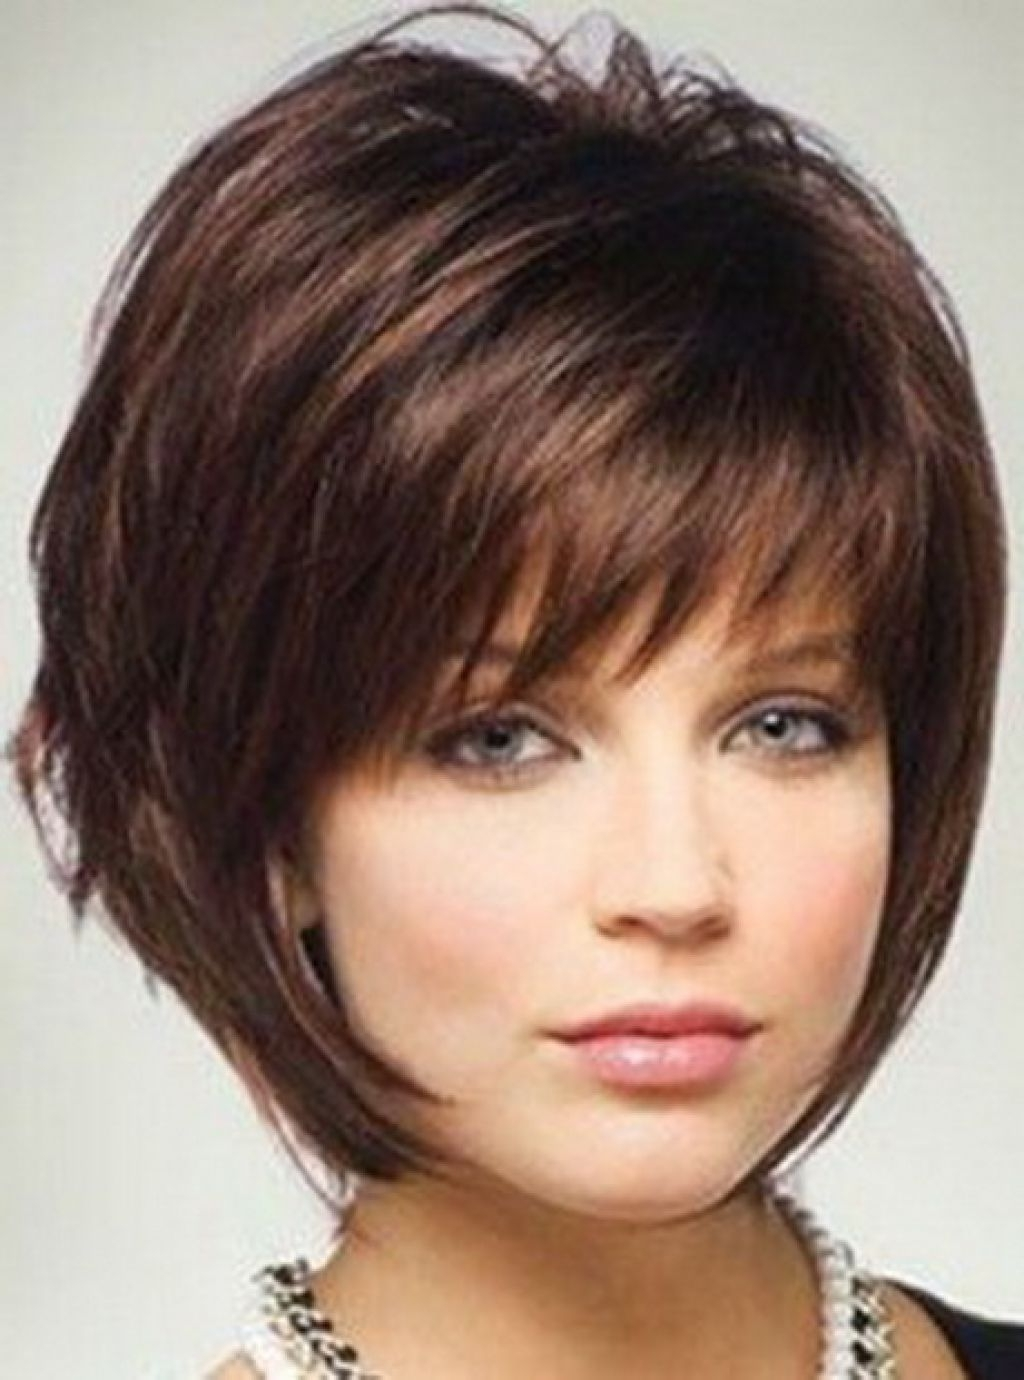 Short Shaggy Hairstyles With Bangs – Hairstyle For Women & Man Regarding Trendy Shaggy Bob Hairstyles With Fringe (View 3 of 15)